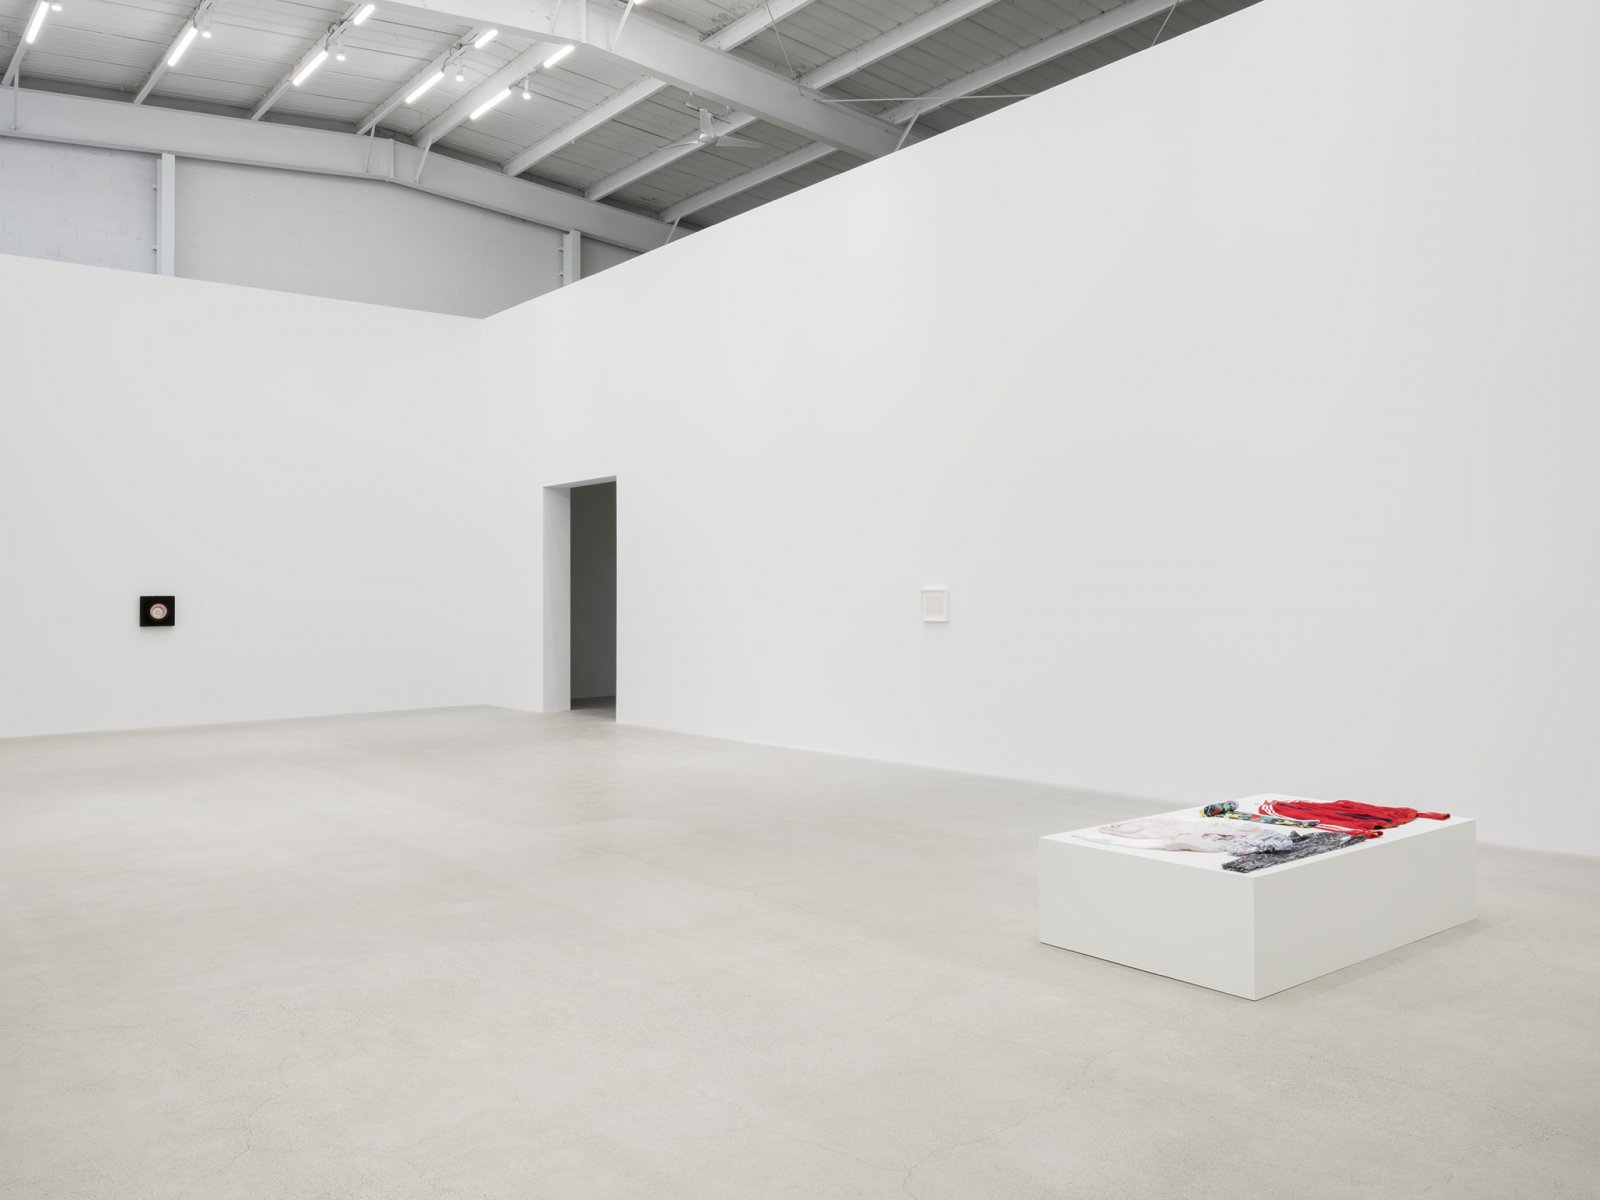 Marcel Duchamp, On Kawara, Tanya Lukin Linklater, installation view, Unexplained Parade, Catriona Jeffries, Vancouver, April 27, 2019